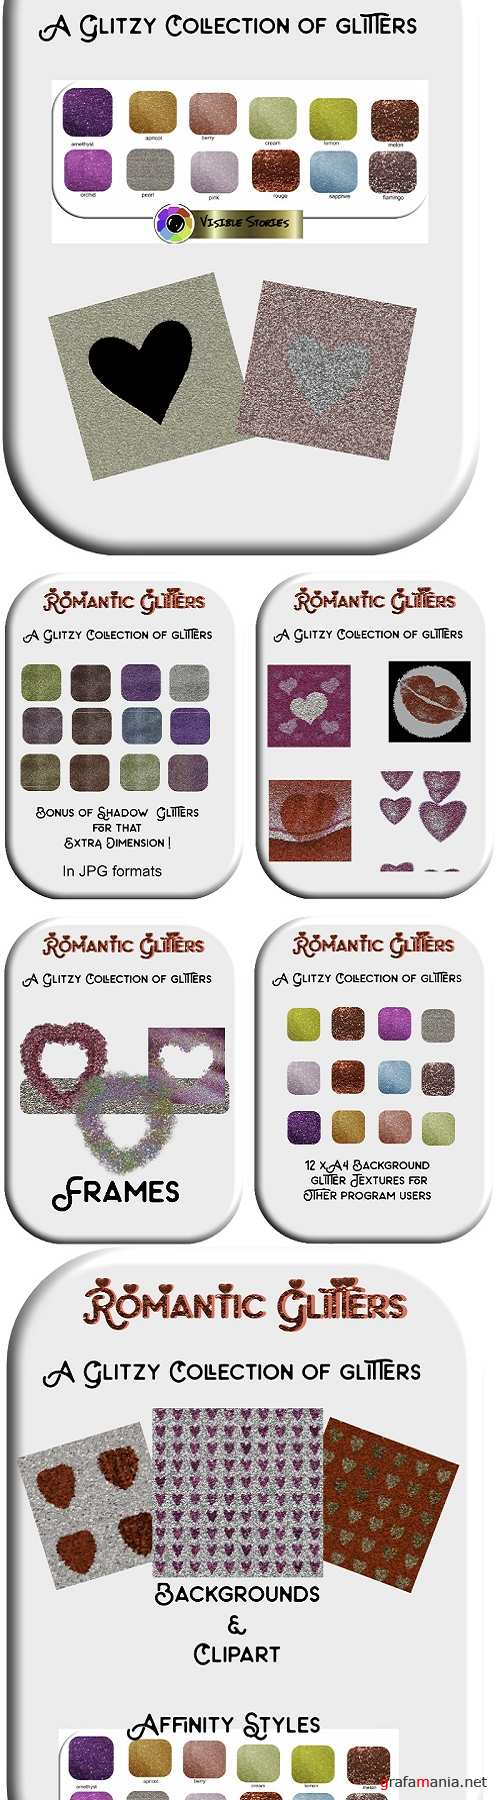 Romantic Glitters - Affinity Styles, Textures